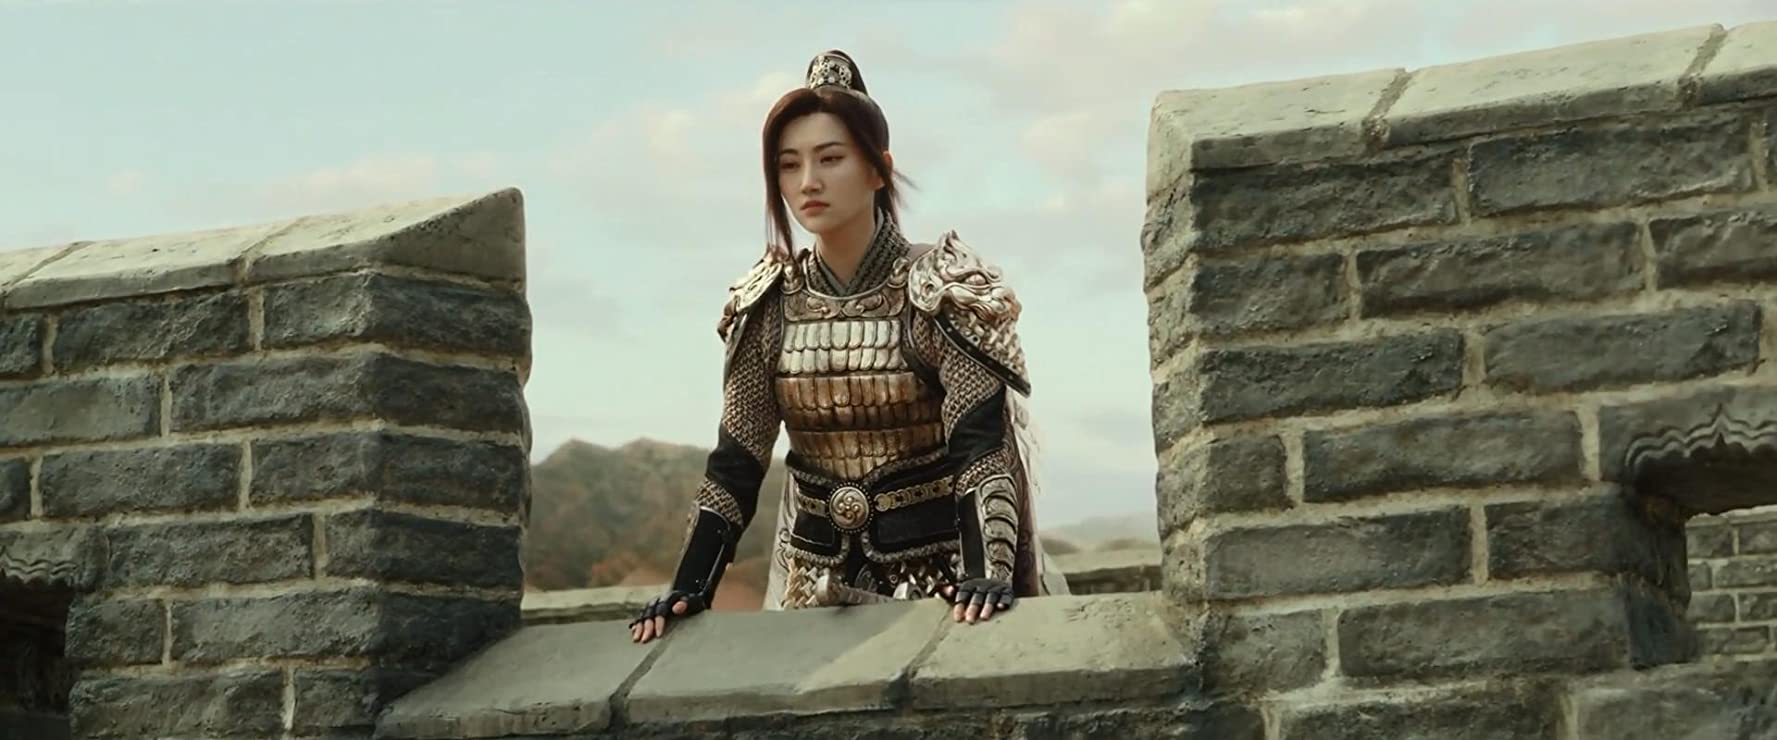 Tian Jing in The Great Wall (2016)